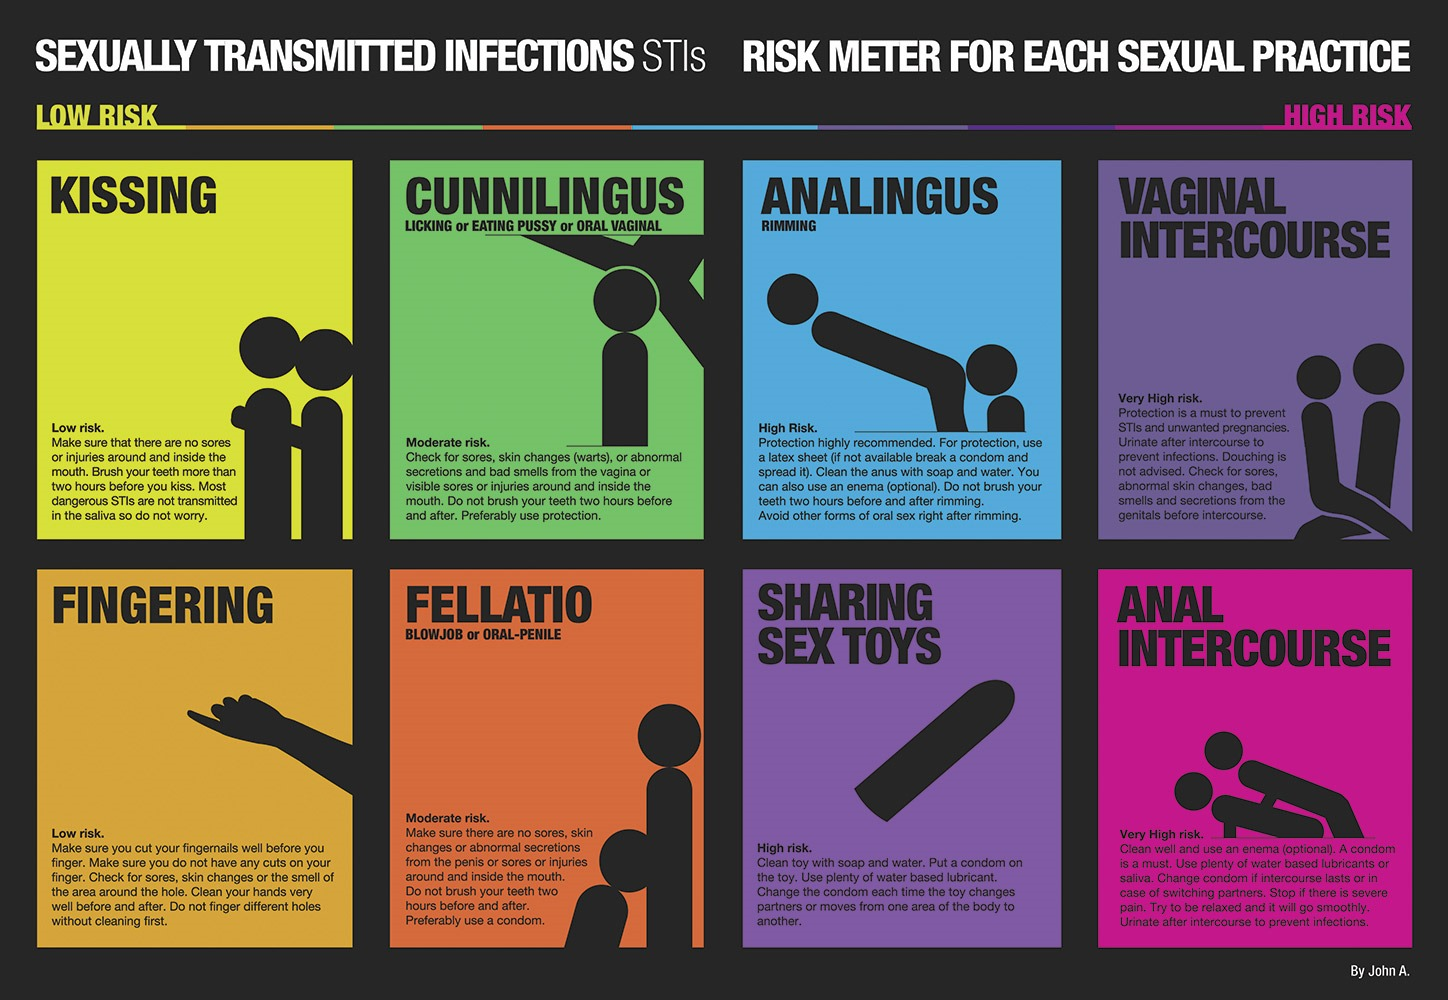 Non sexual transmitted infections